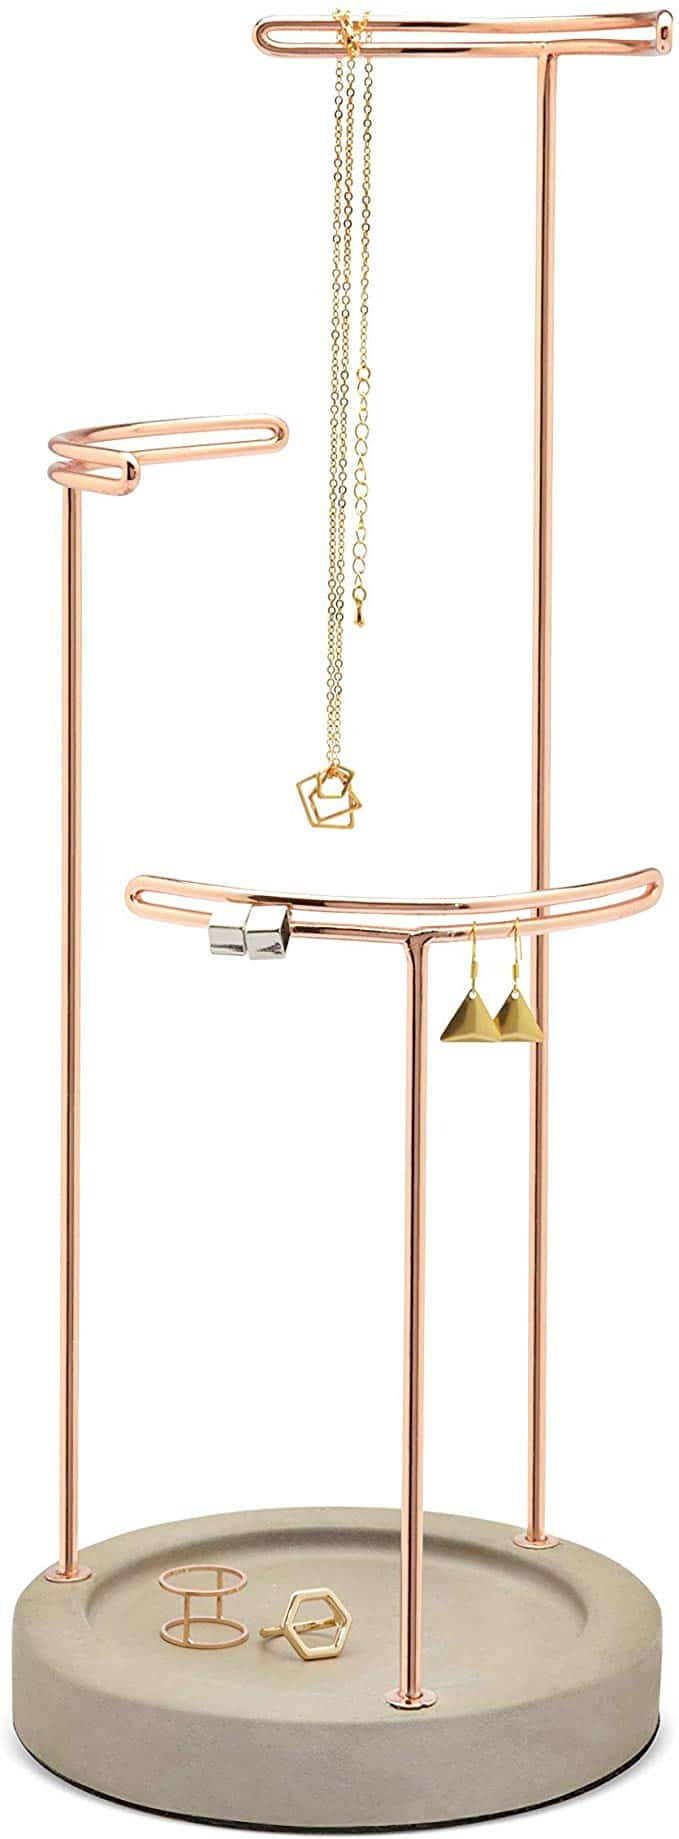 Umbra Tesora, 3 Tier Jewelry Stand, Earring Holder, Accessory Organizer and Display, Concrete/Copper gift idea for teenage girls